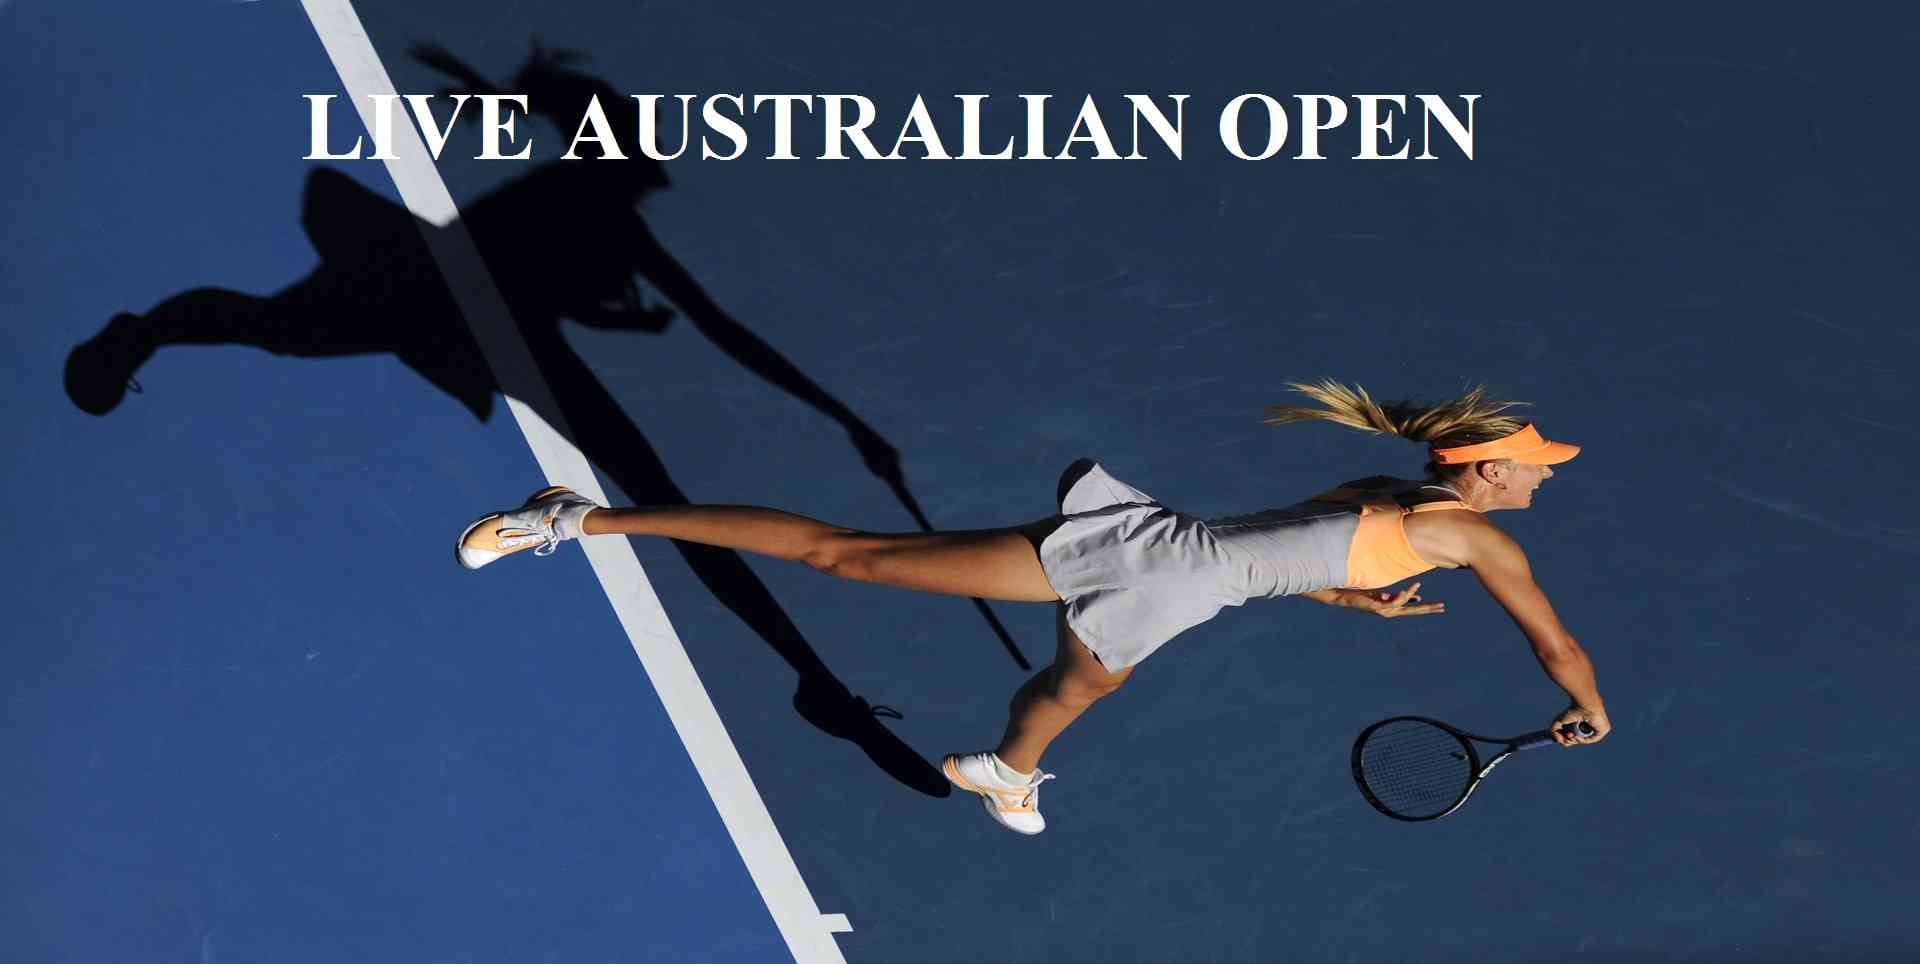 Australian Open Tennis 2018 Finals